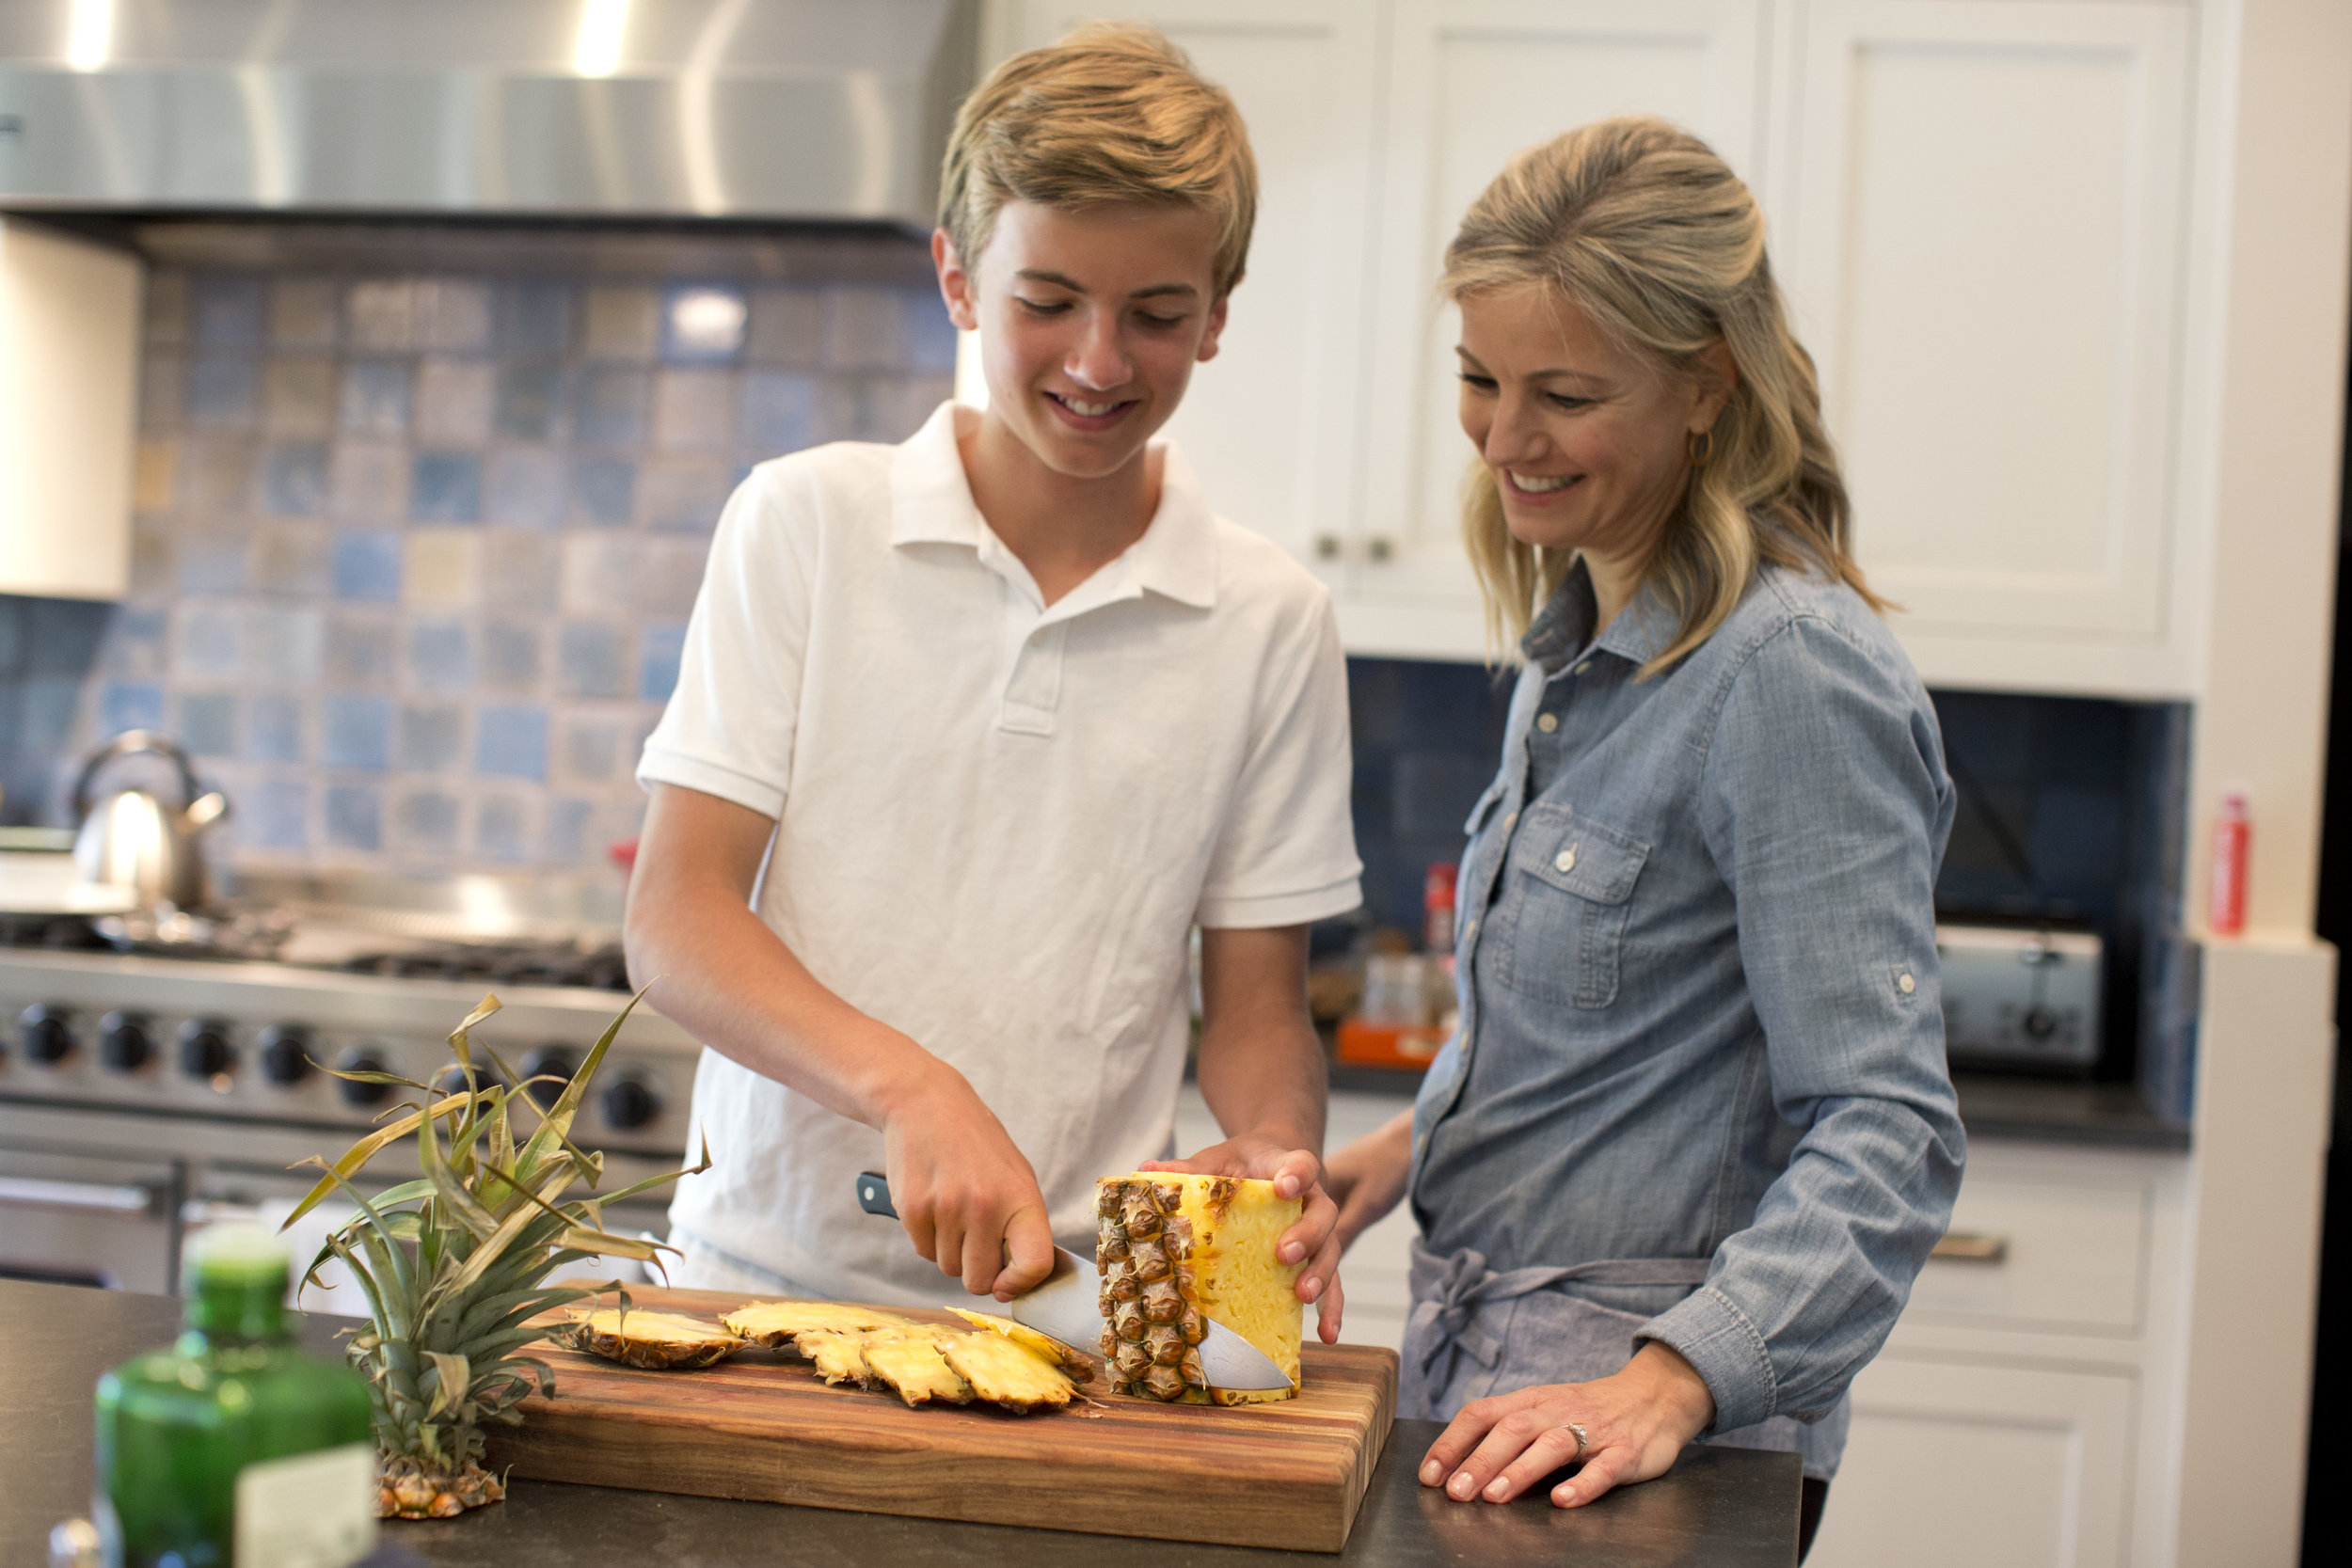 Dr. Julia cooks with her son